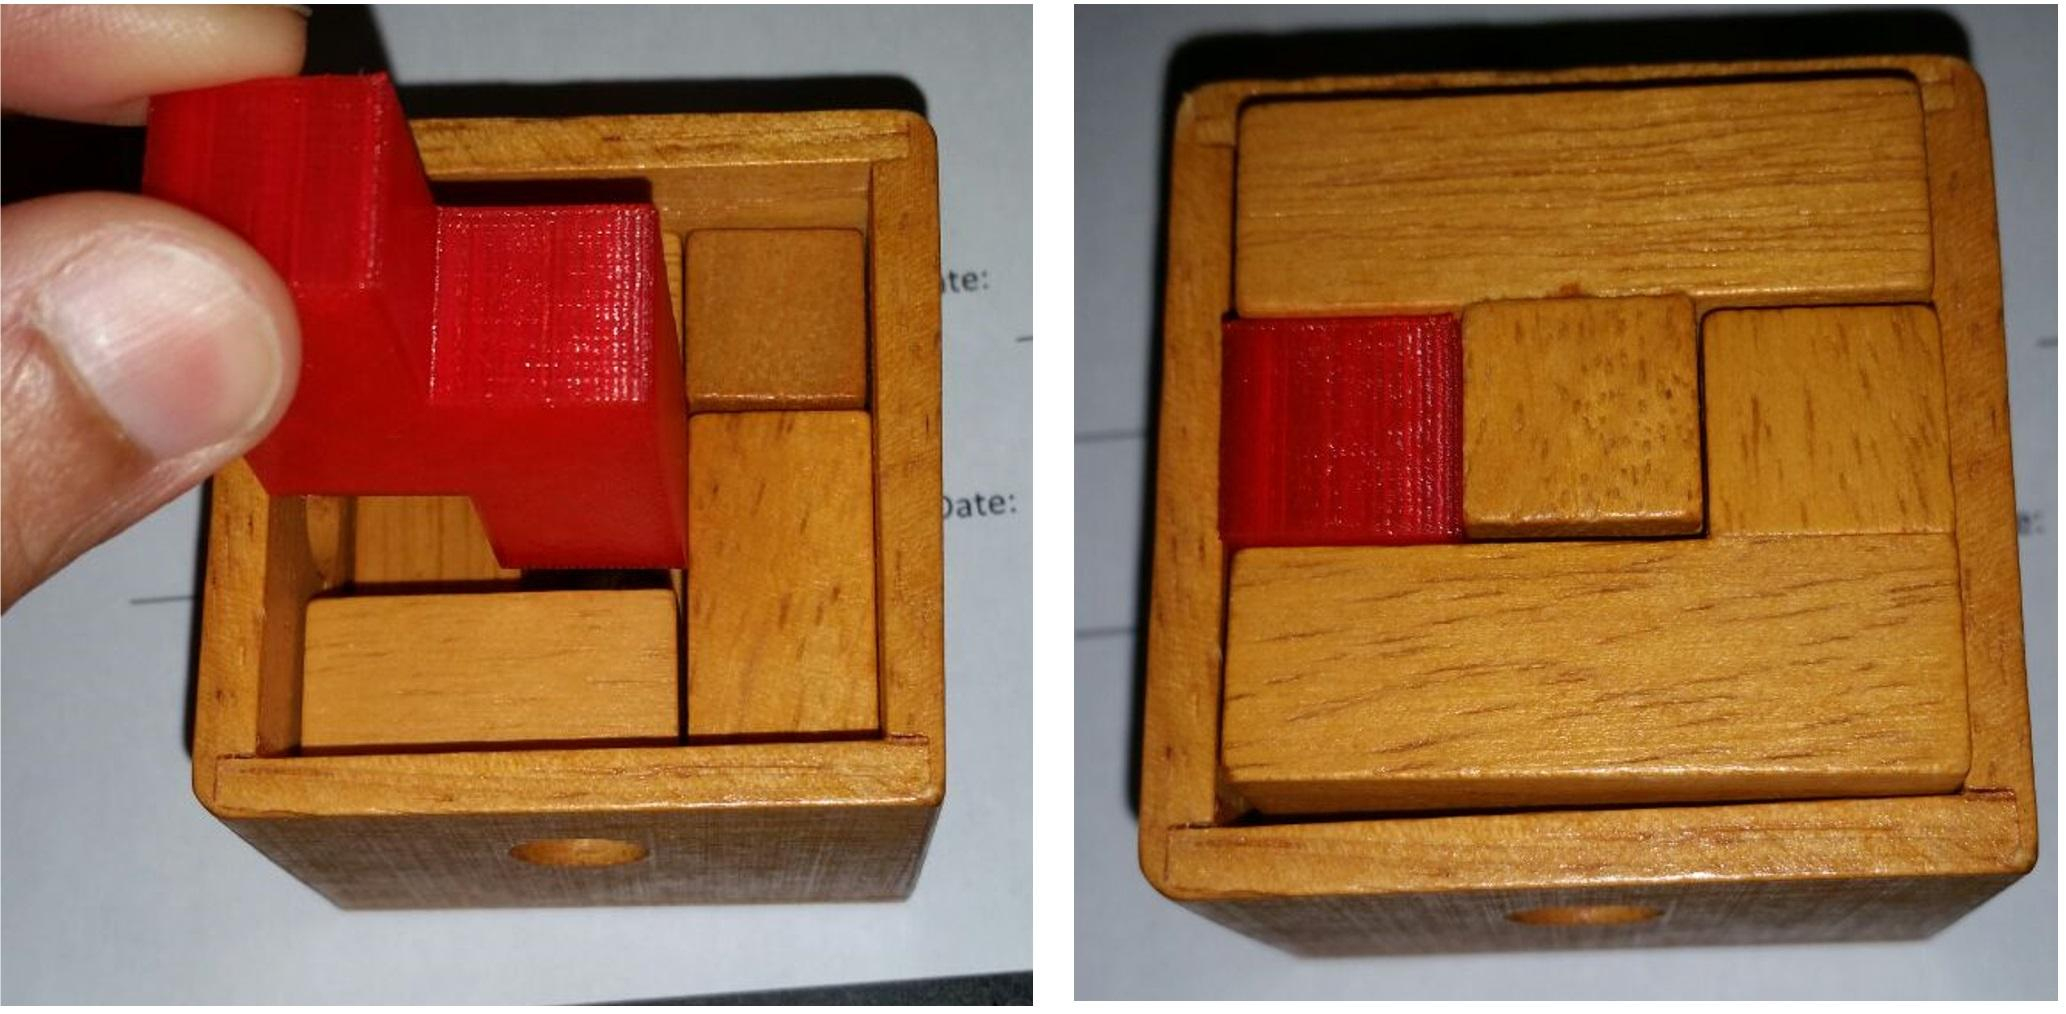 I 3D Printed This Missing Puzzle Piece : Pics - Print Missing Puzzle Piece